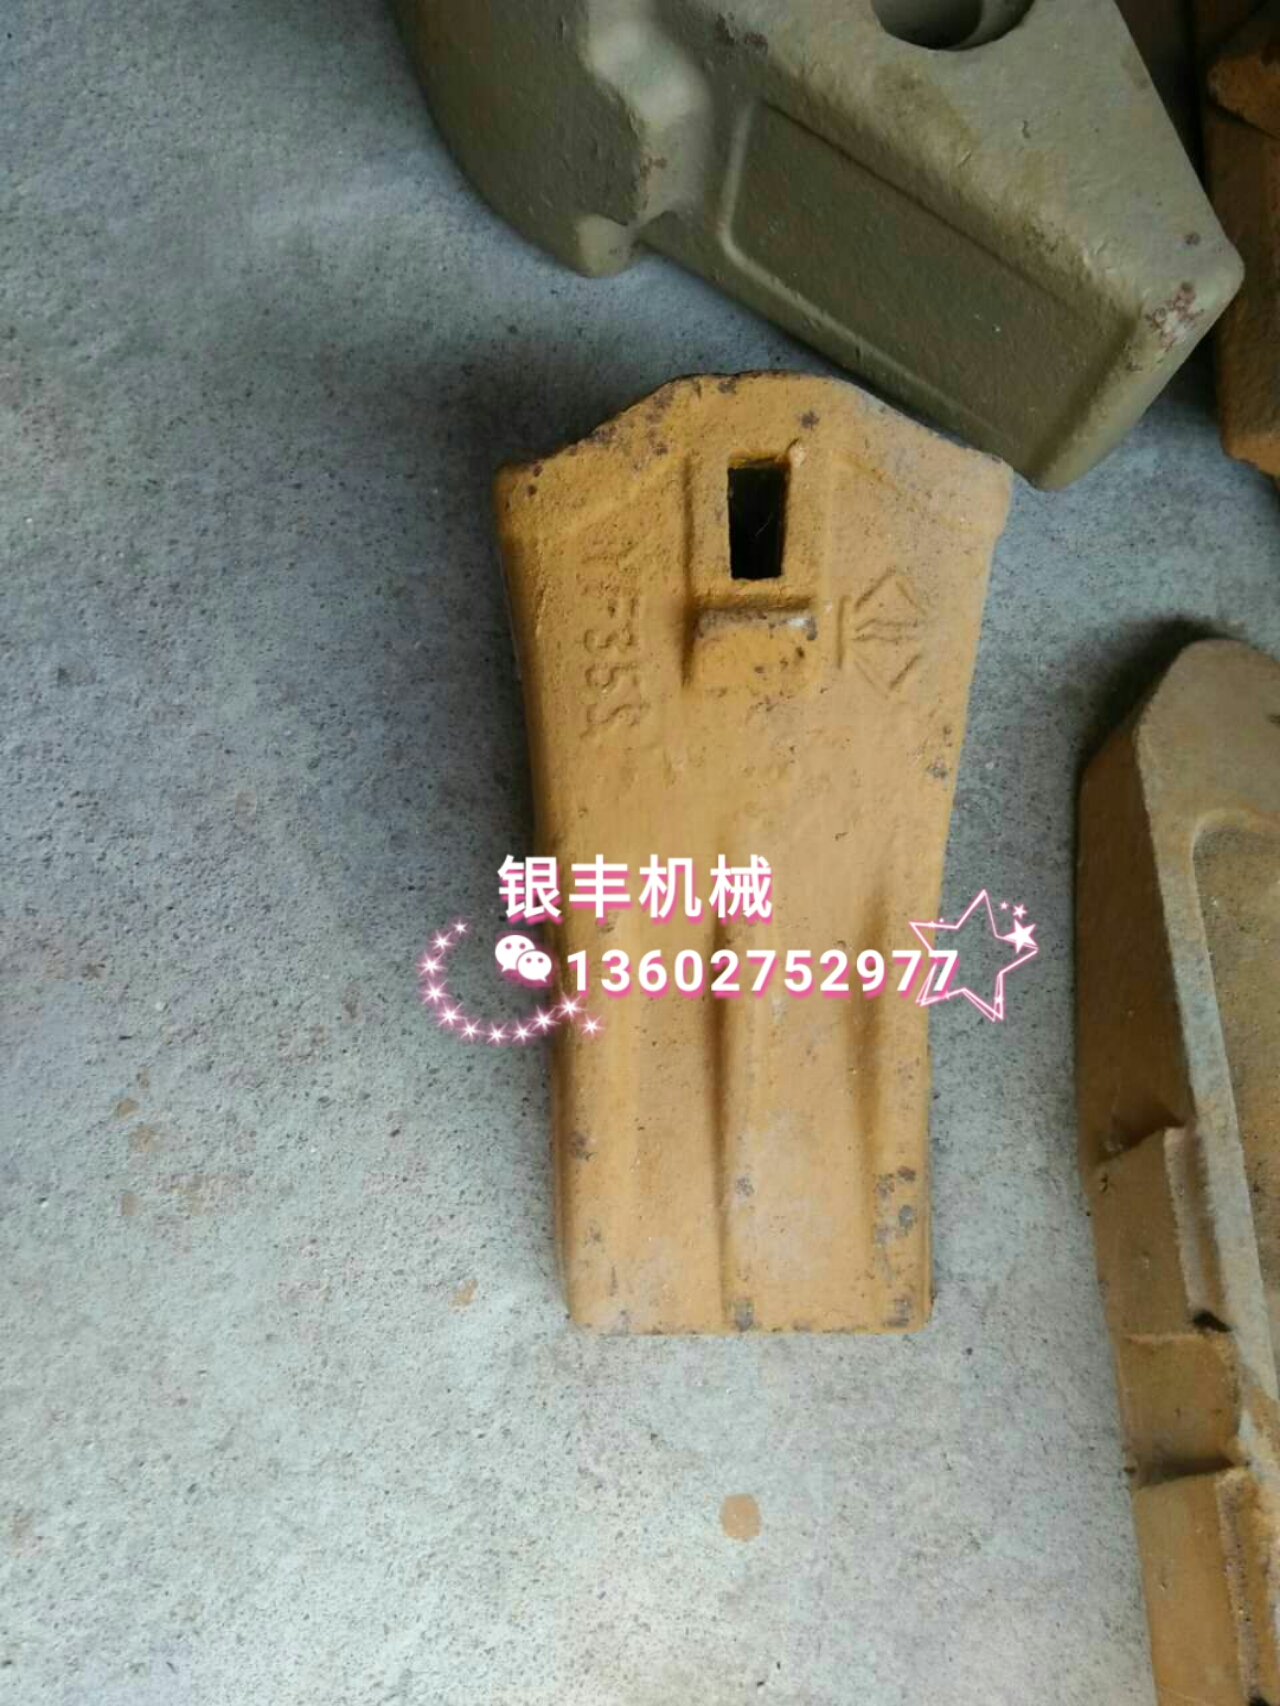 Hitachi 200 vertical pin bucket teeth 35S bucket teeth original machine  excavator parts factory direct